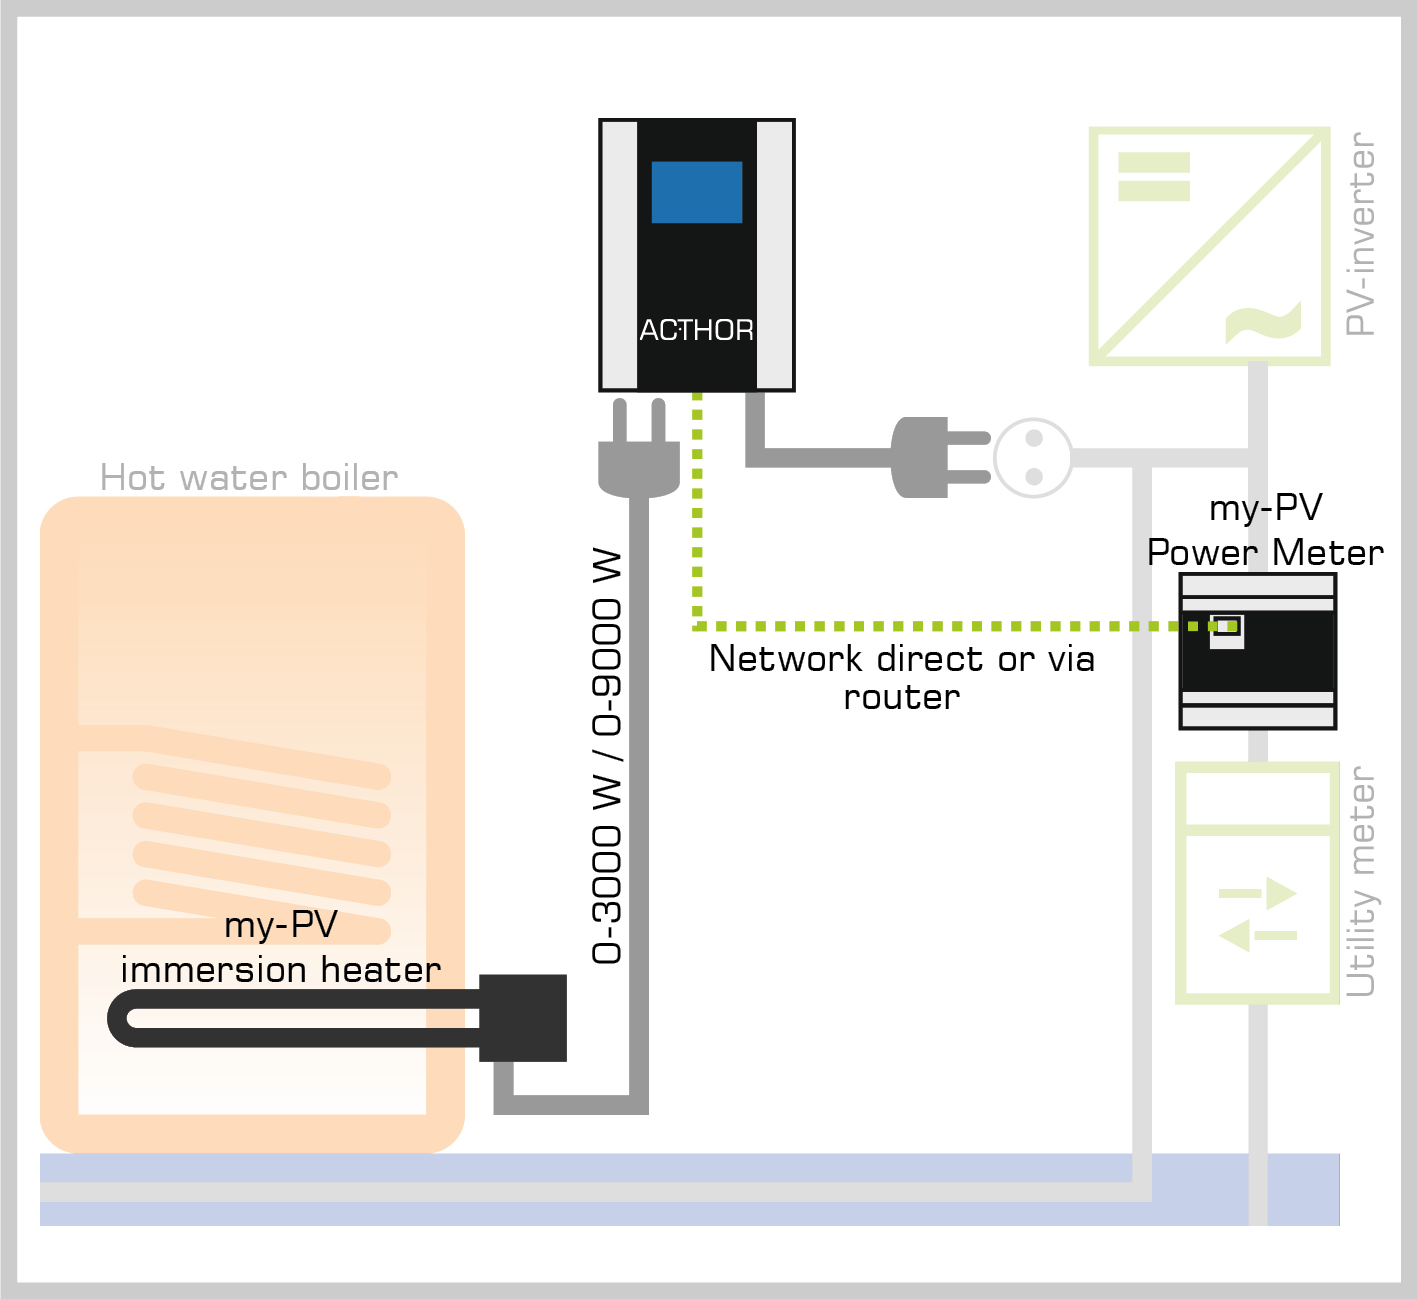 hight resolution of  immersion heater 3kw my pv gmbh on 480 three phase diagram 3 wiring diagrams